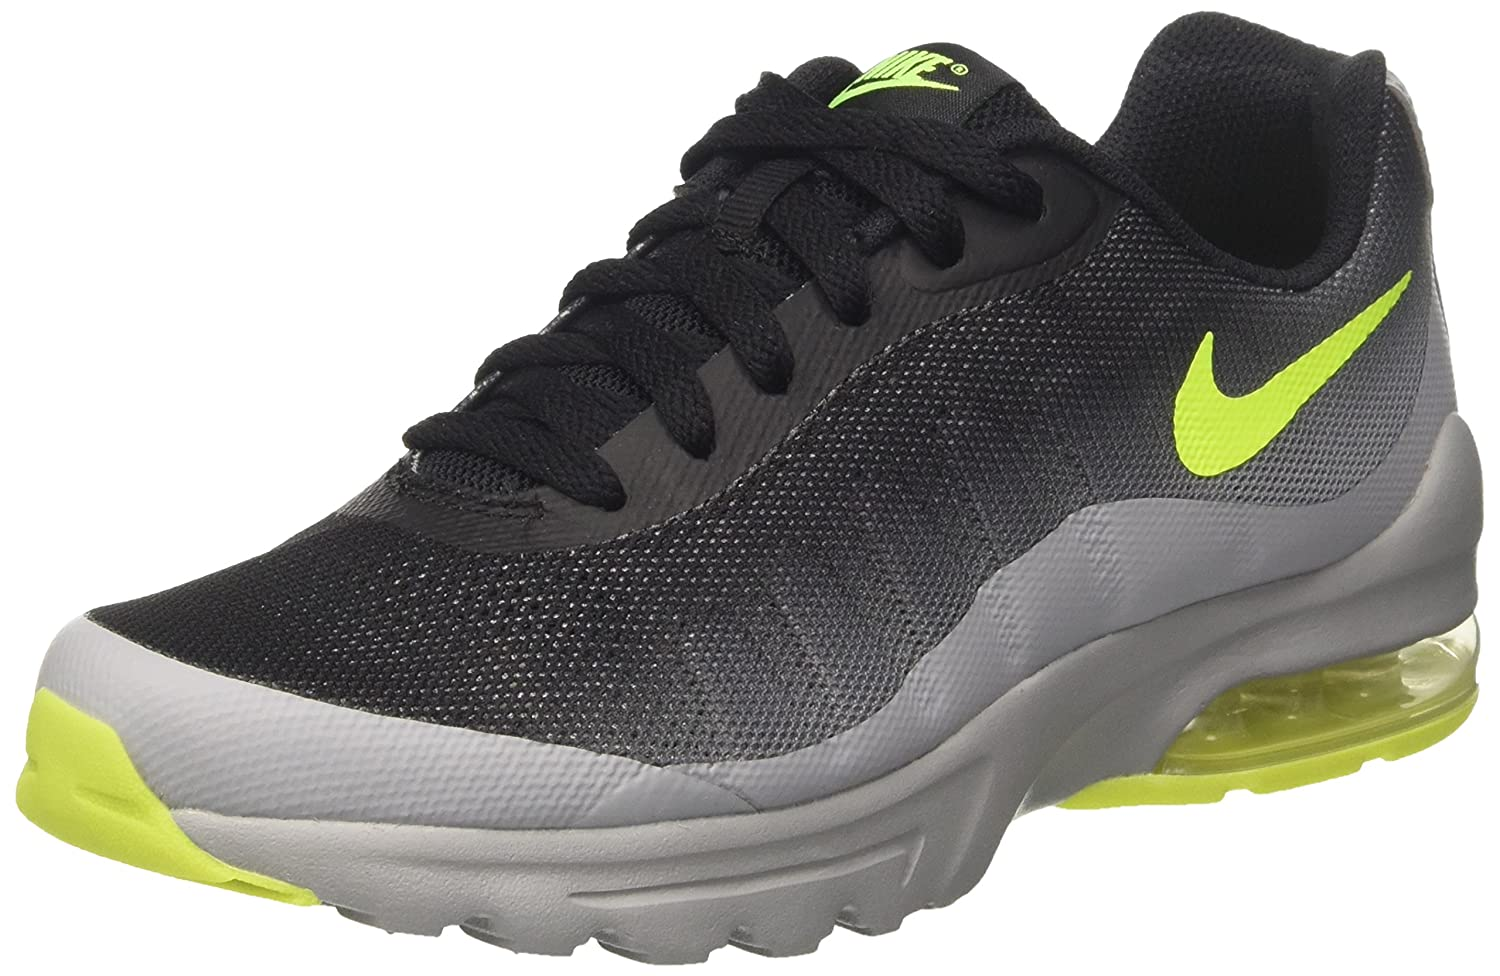 sports shoes fdec1 e6330 Nike Kids Air Max Invigor (GS) Wolf Grey Volt Black Running Shoe 5. 5 Kids  US  Buy Online at Low Prices in India - Amazon.in